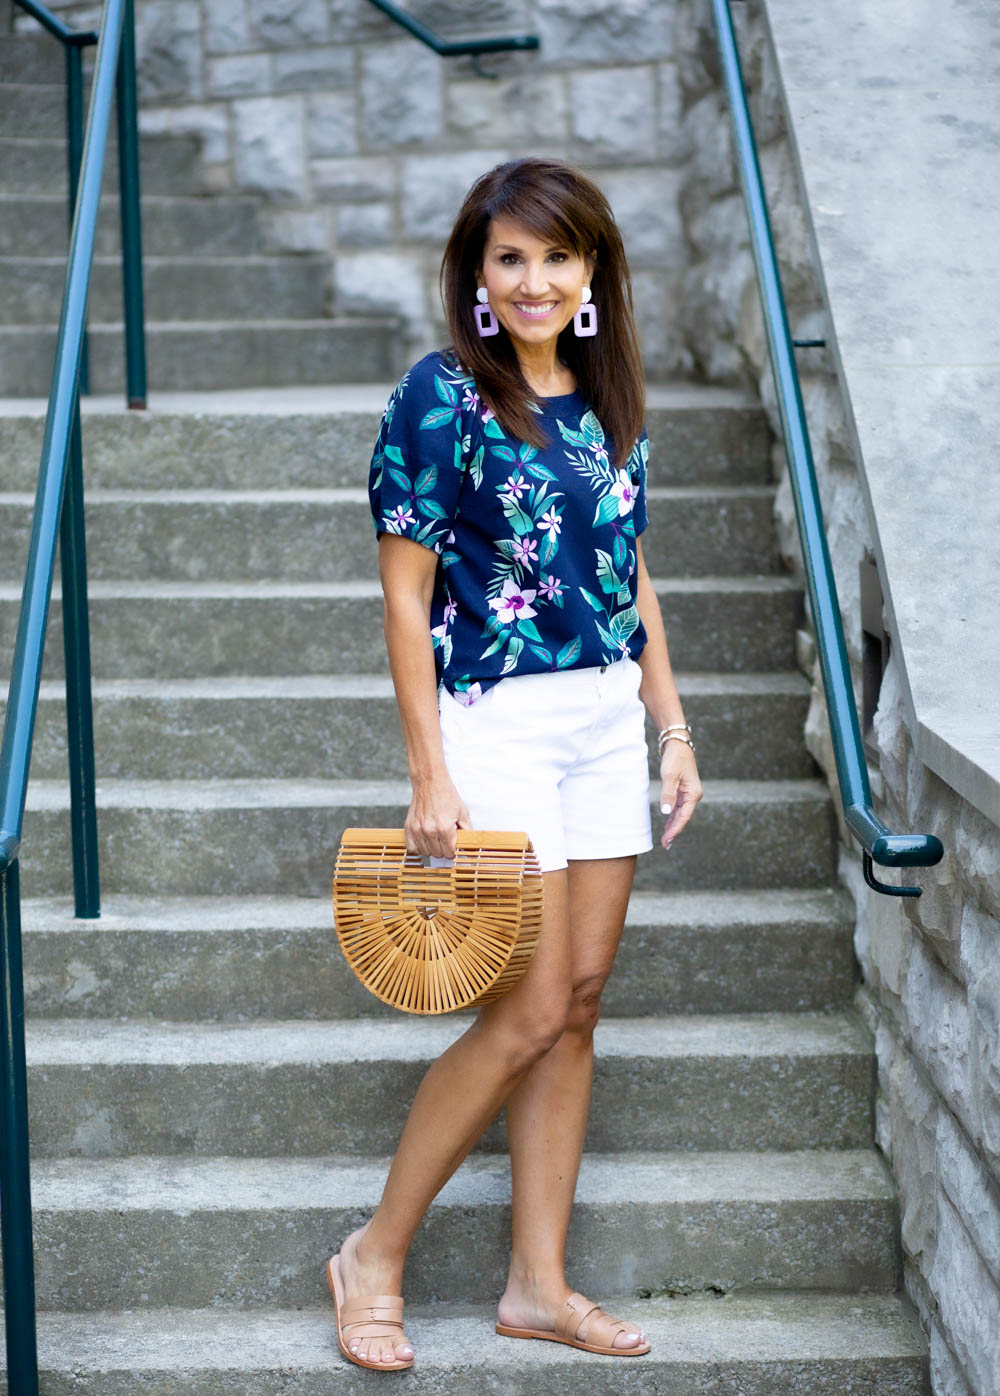 Floral Print And White for Summer